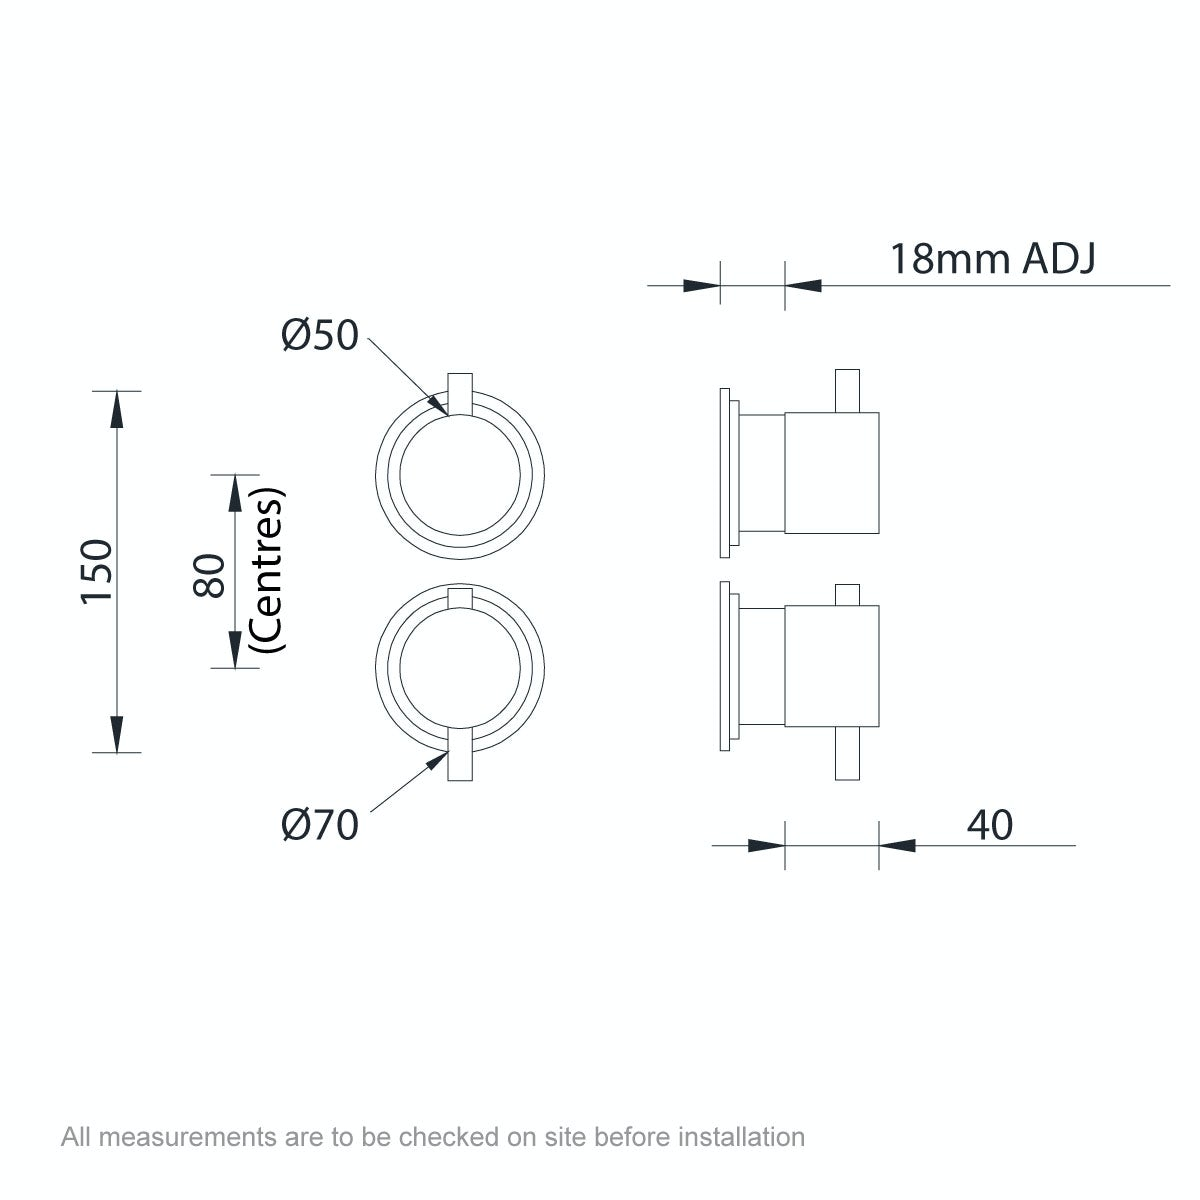 Dimensions for Mode Hardy round twin thermostatic shower valve with diverter